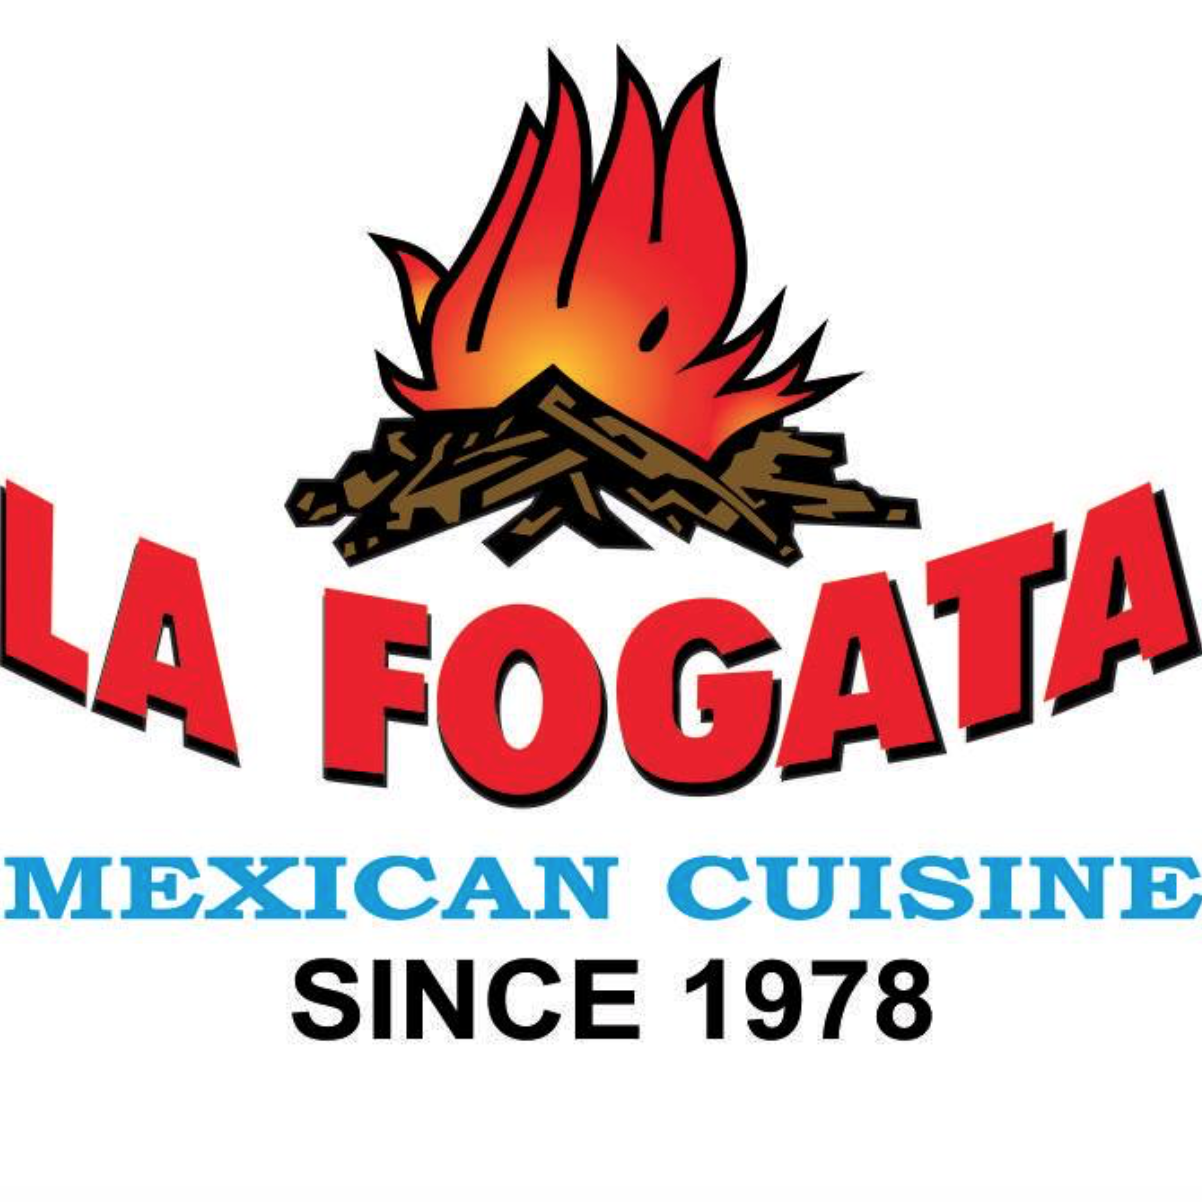 La Fogata (Dominion) , Dinner  22211 Interstate 10 Frontage Rd, San Antonio, 78257  P 210-698-9700    La Fogata's Dinner Menu